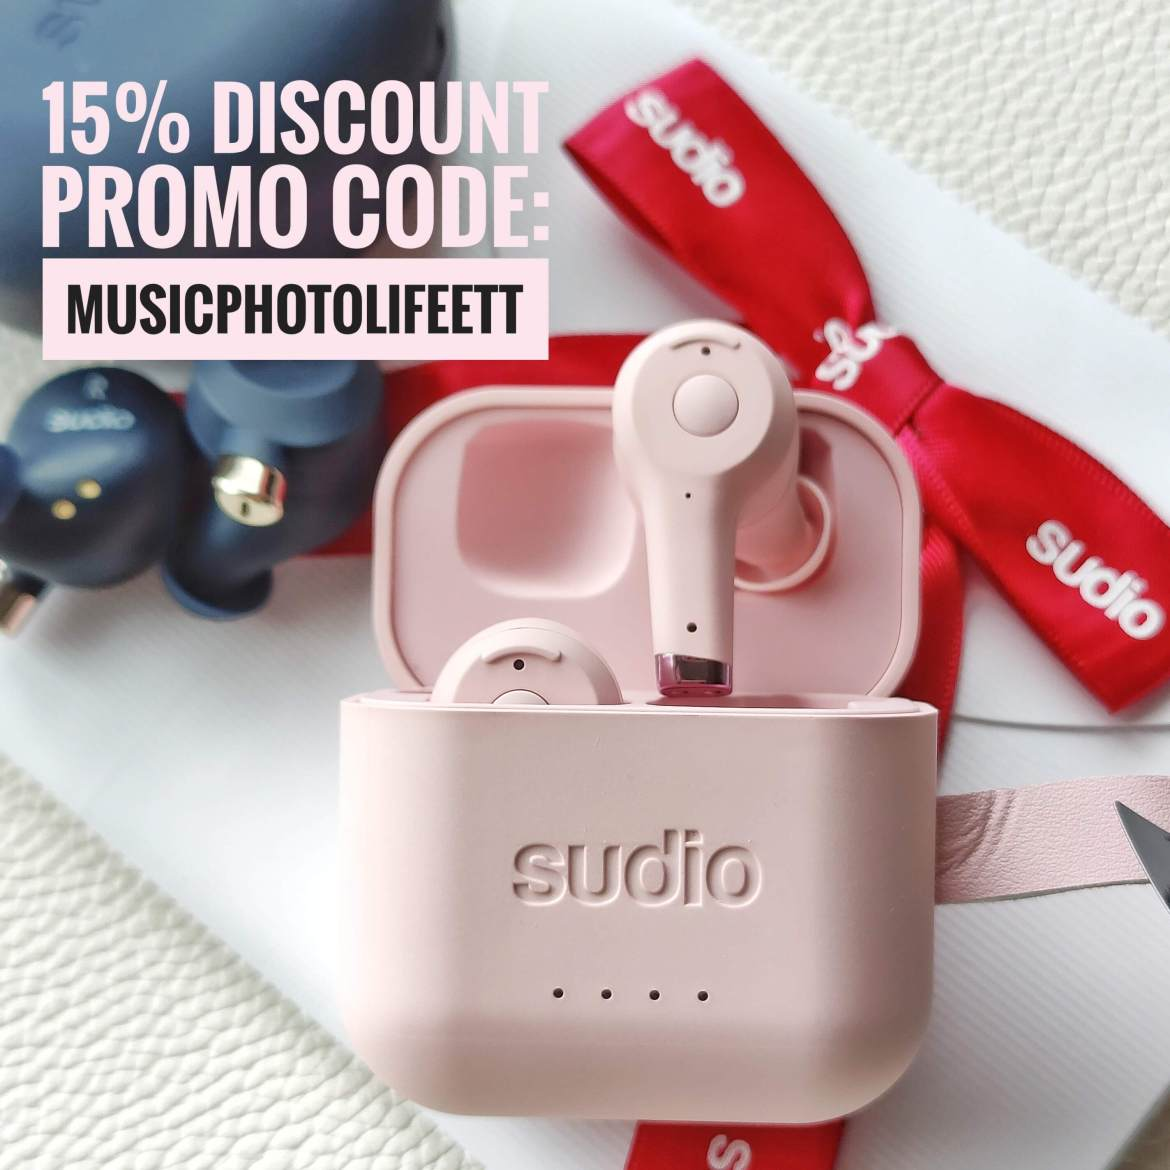 Sudio discount code